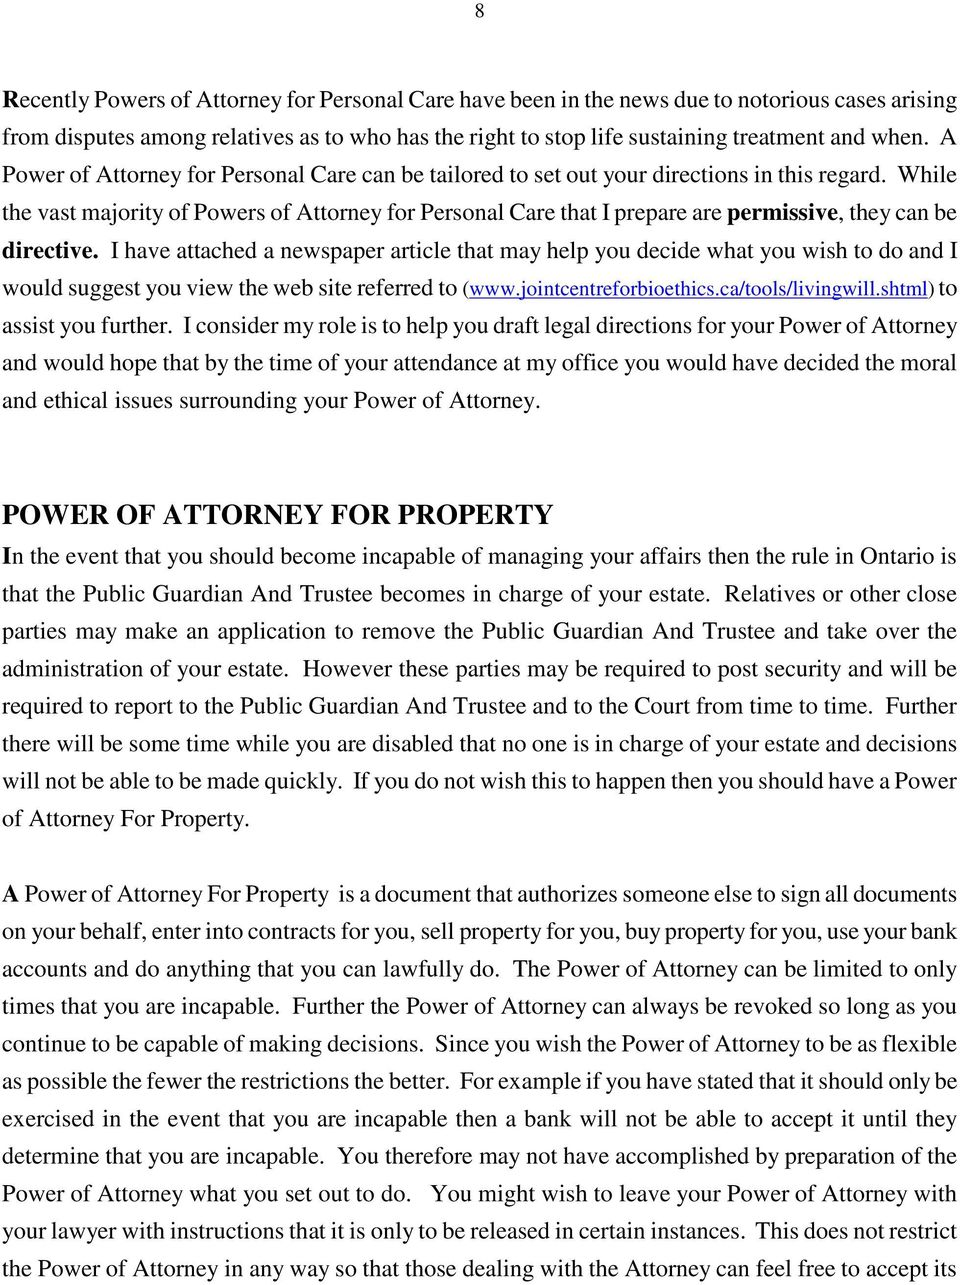 While the vast majority of Powers of Attorney for Personal Care that I prepare are permissive, they can be directive.